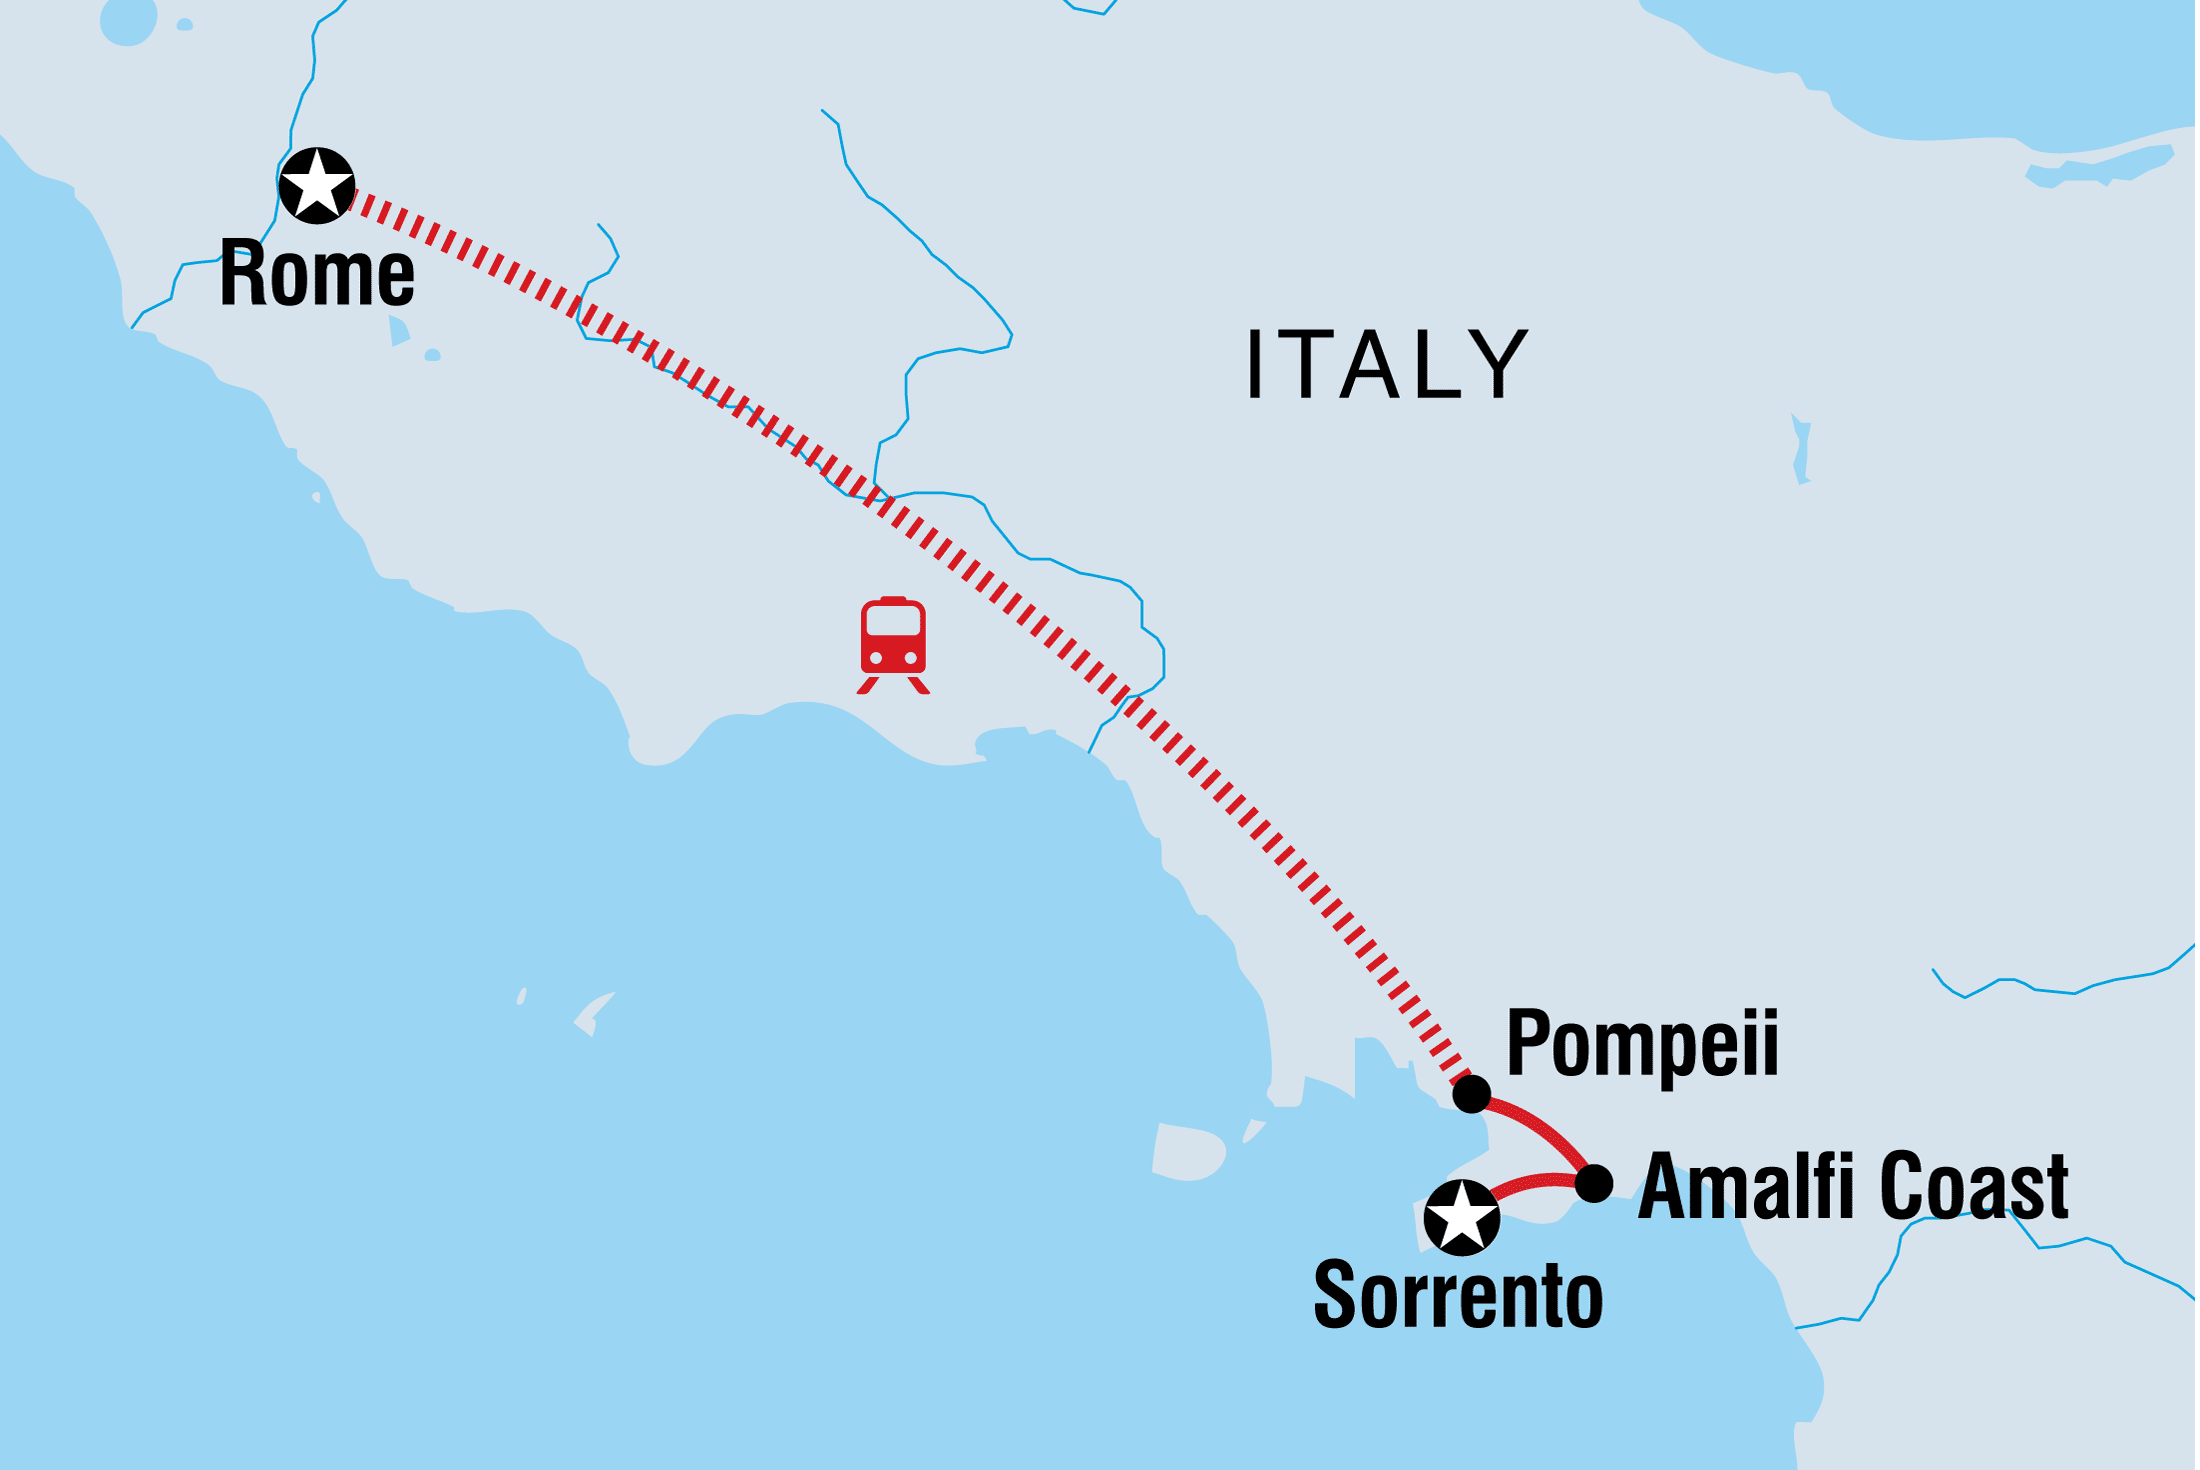 Where Is Pompeii On A Map Of Italy.Italy Family Holiday Intrepid Travel